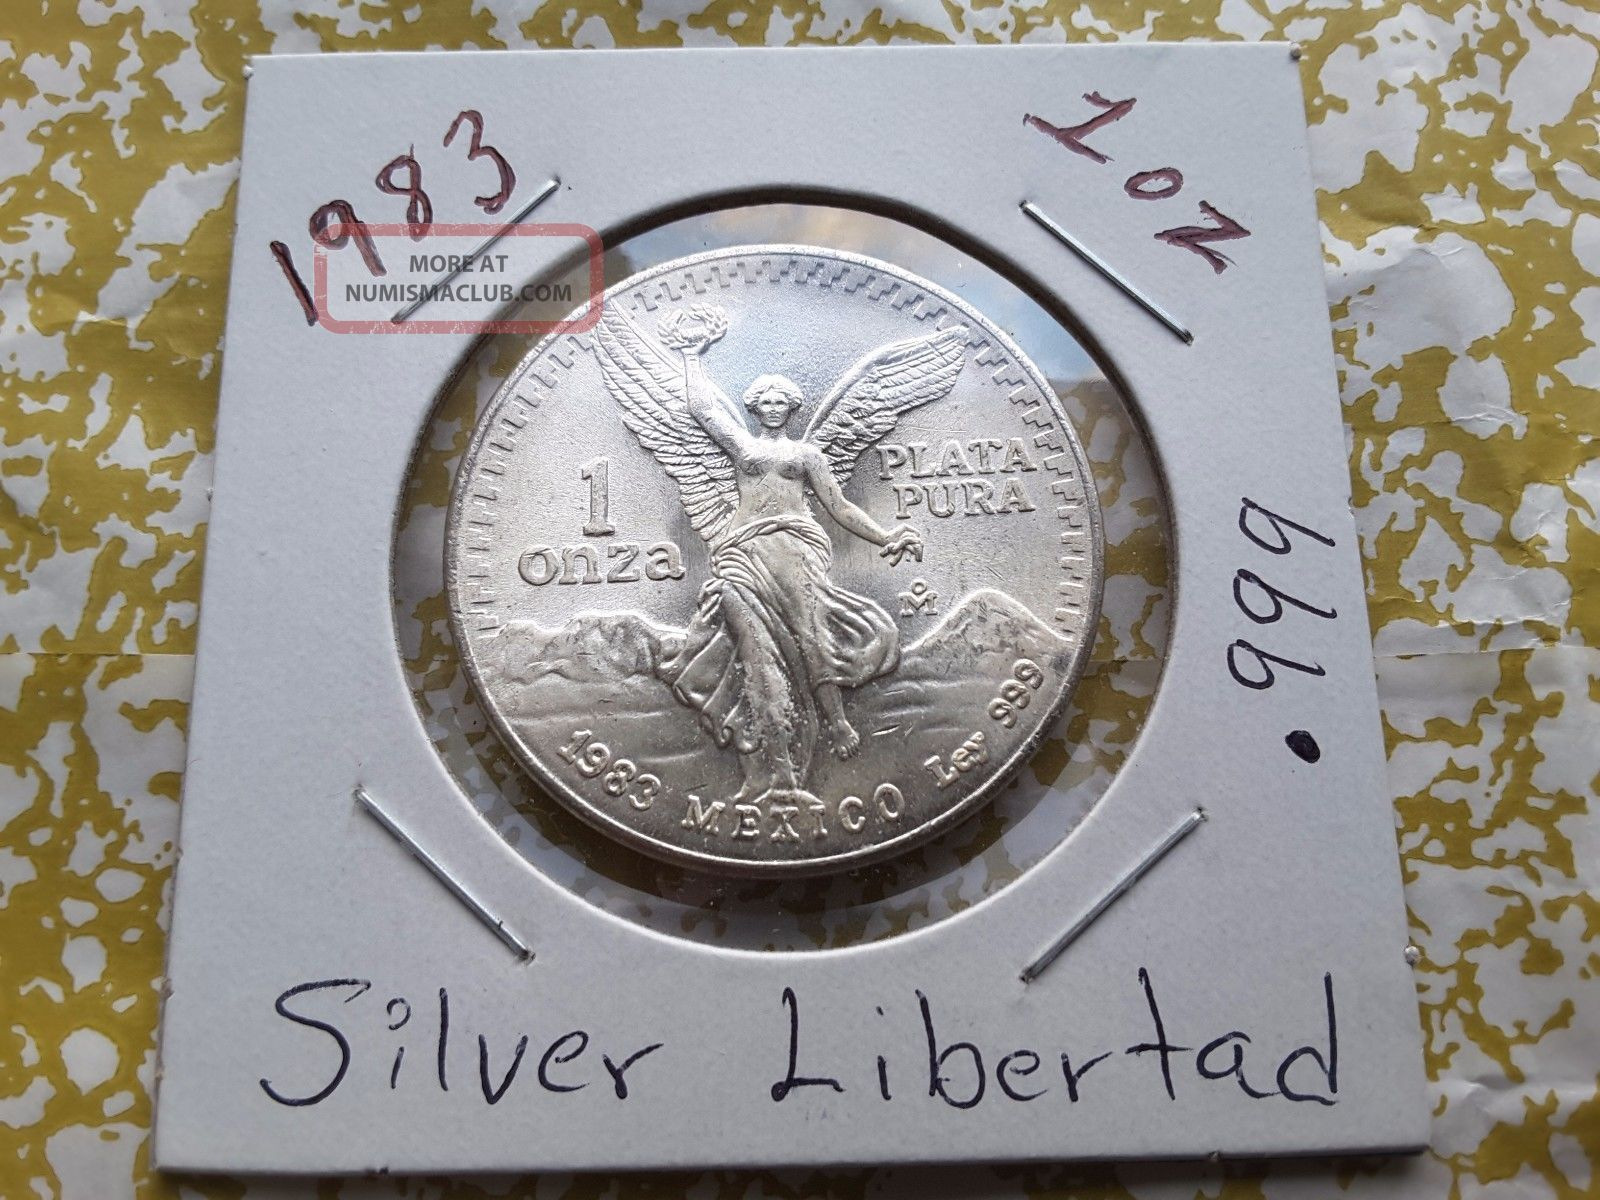 1983 1 Oz Silver Mexican Libertad (uncirculated) 1 Onza.  999 Plata Pura Silver photo